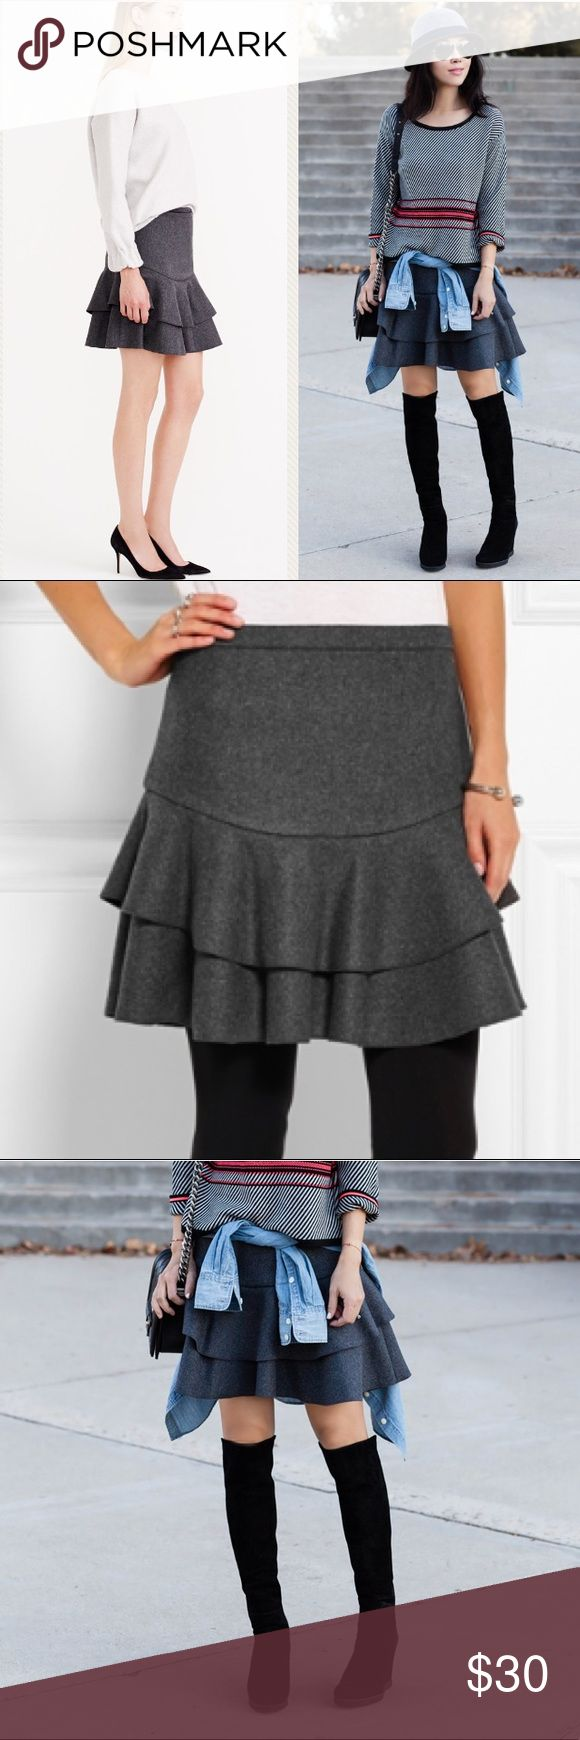 J. Crew Wool Ruffle Skirt Dress it up with heels or dress it down with boots-- heavy weight wool blend ruffle skirt, fully lined with back zip. Stock photo is grey but skirt for sale is black. New without tags. Size 6. J. Crew Skirts